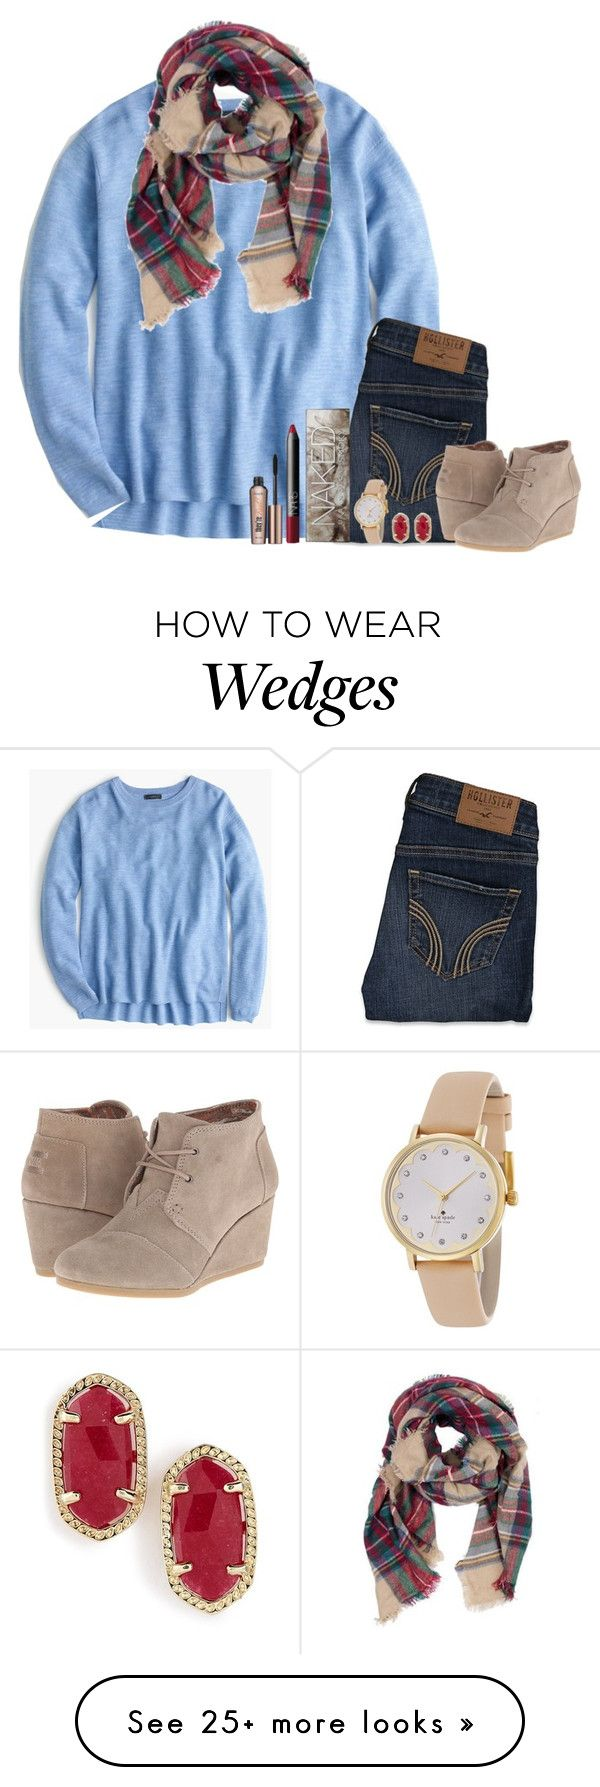 """I'd rather be somewhere with you."" by bloom17 on Polyvore featuring J.Crew, Hollister Co., TOMS, Urban Decay, NARS Cosmetics, Benefit, Kendra Scott and Kate Spade"